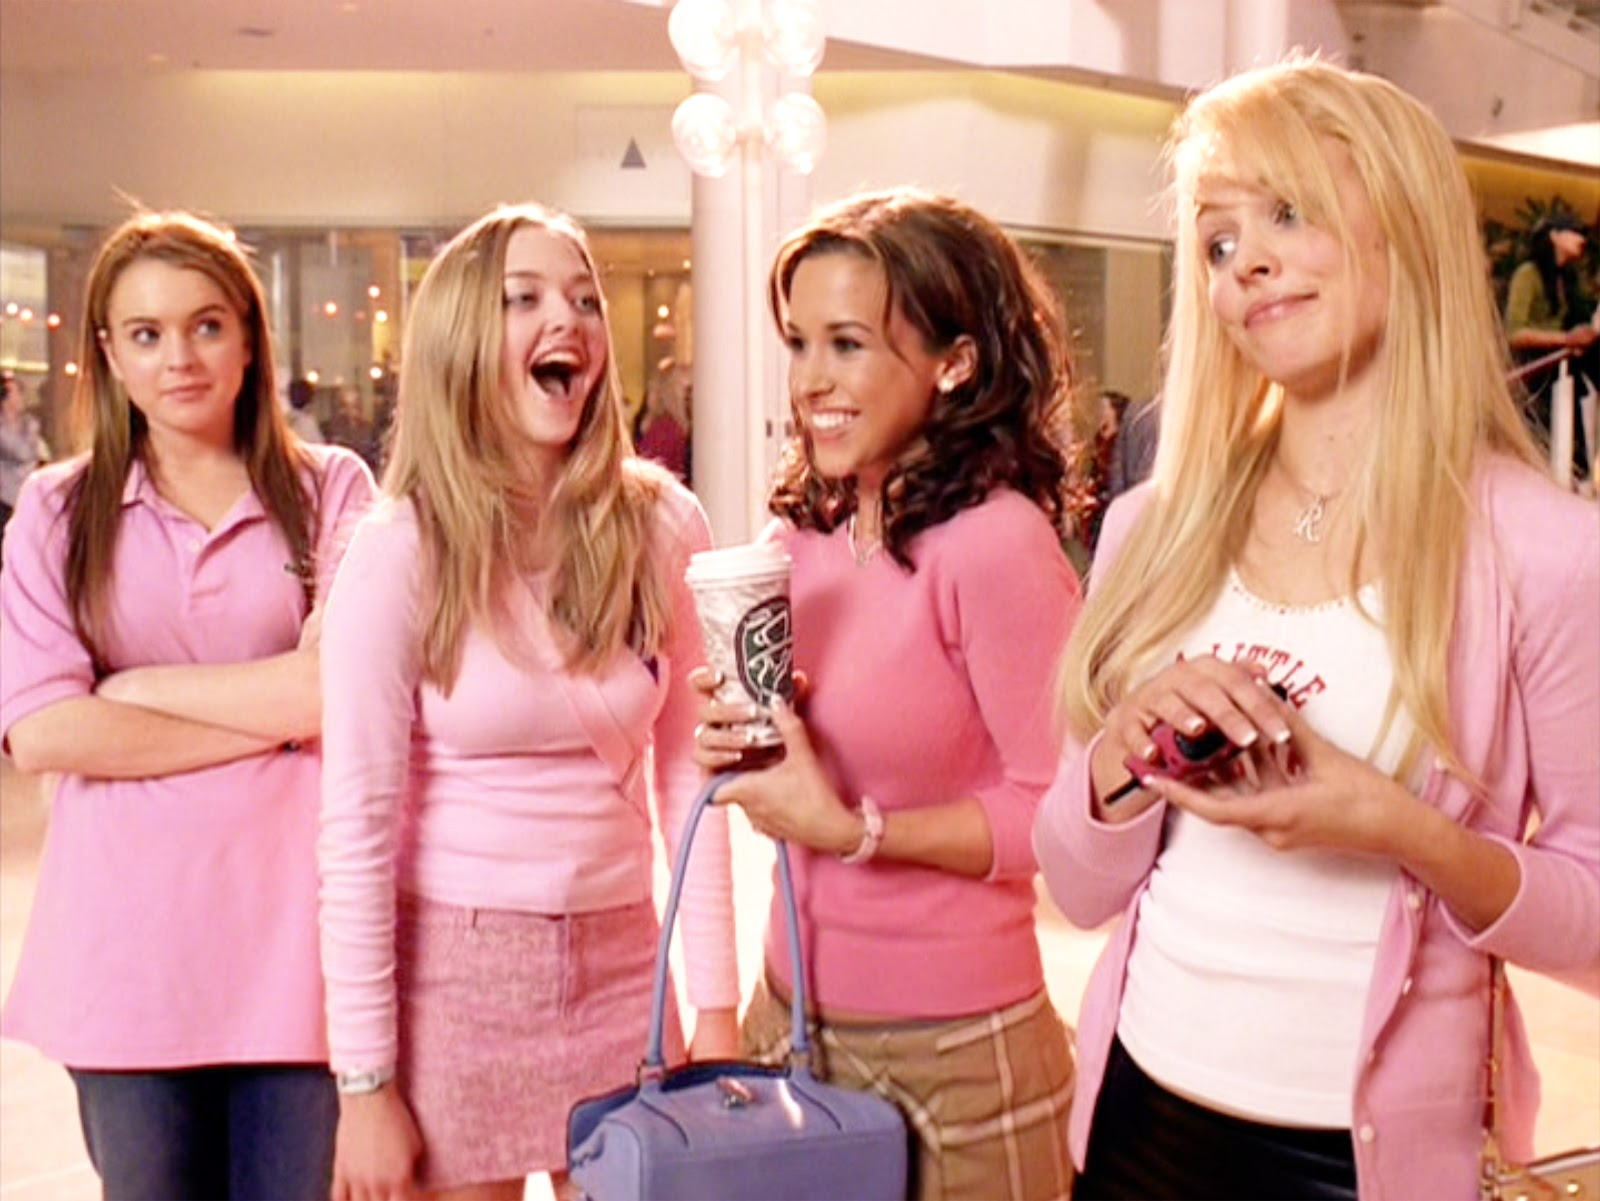 mean girls essay mean girls essay atsl ip mean girls essay mean mean girls essaymean girls page of the movie quot mean girls quot directed